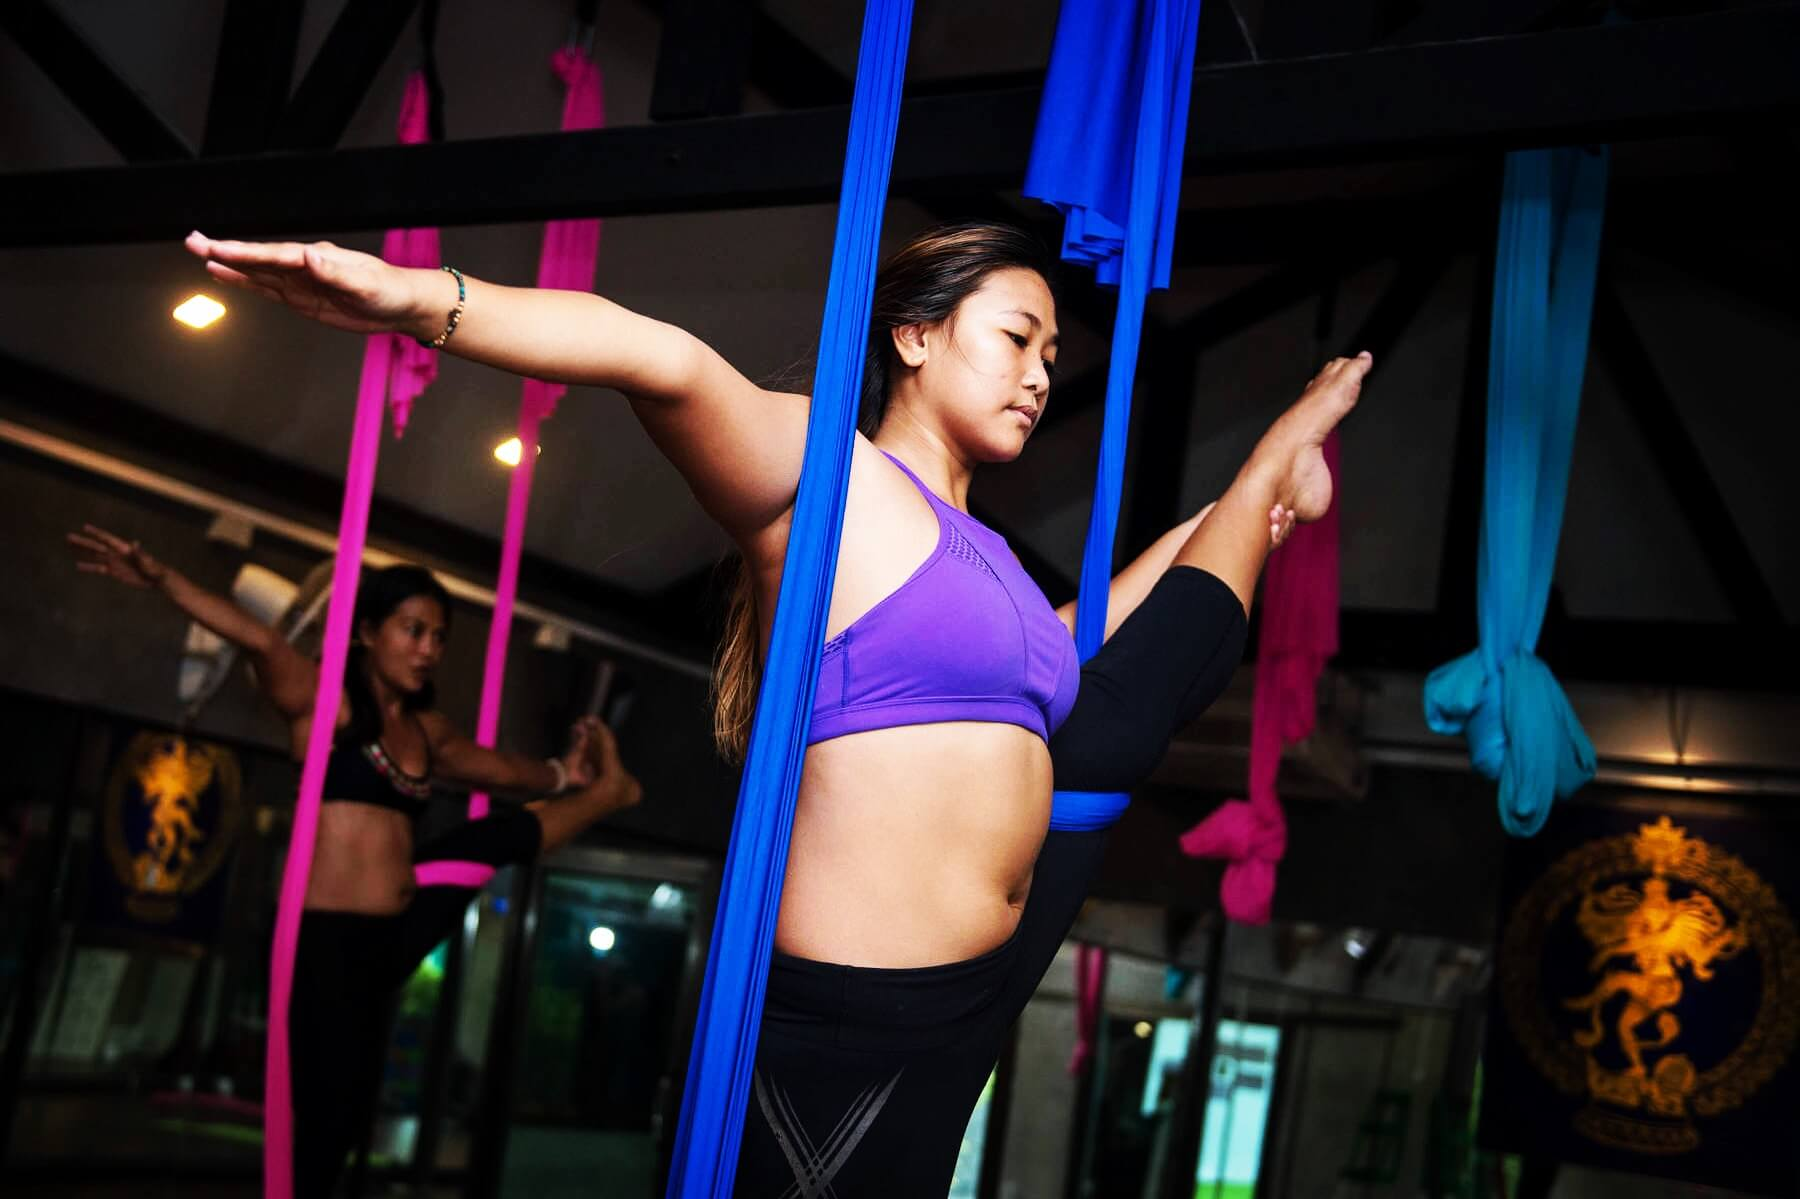 Kru Instructor Yuyi teaches all classes with an Emphasis on Aerial Yoga at 5 Elements Hot Yoga Resort in Phuket, Thailand.